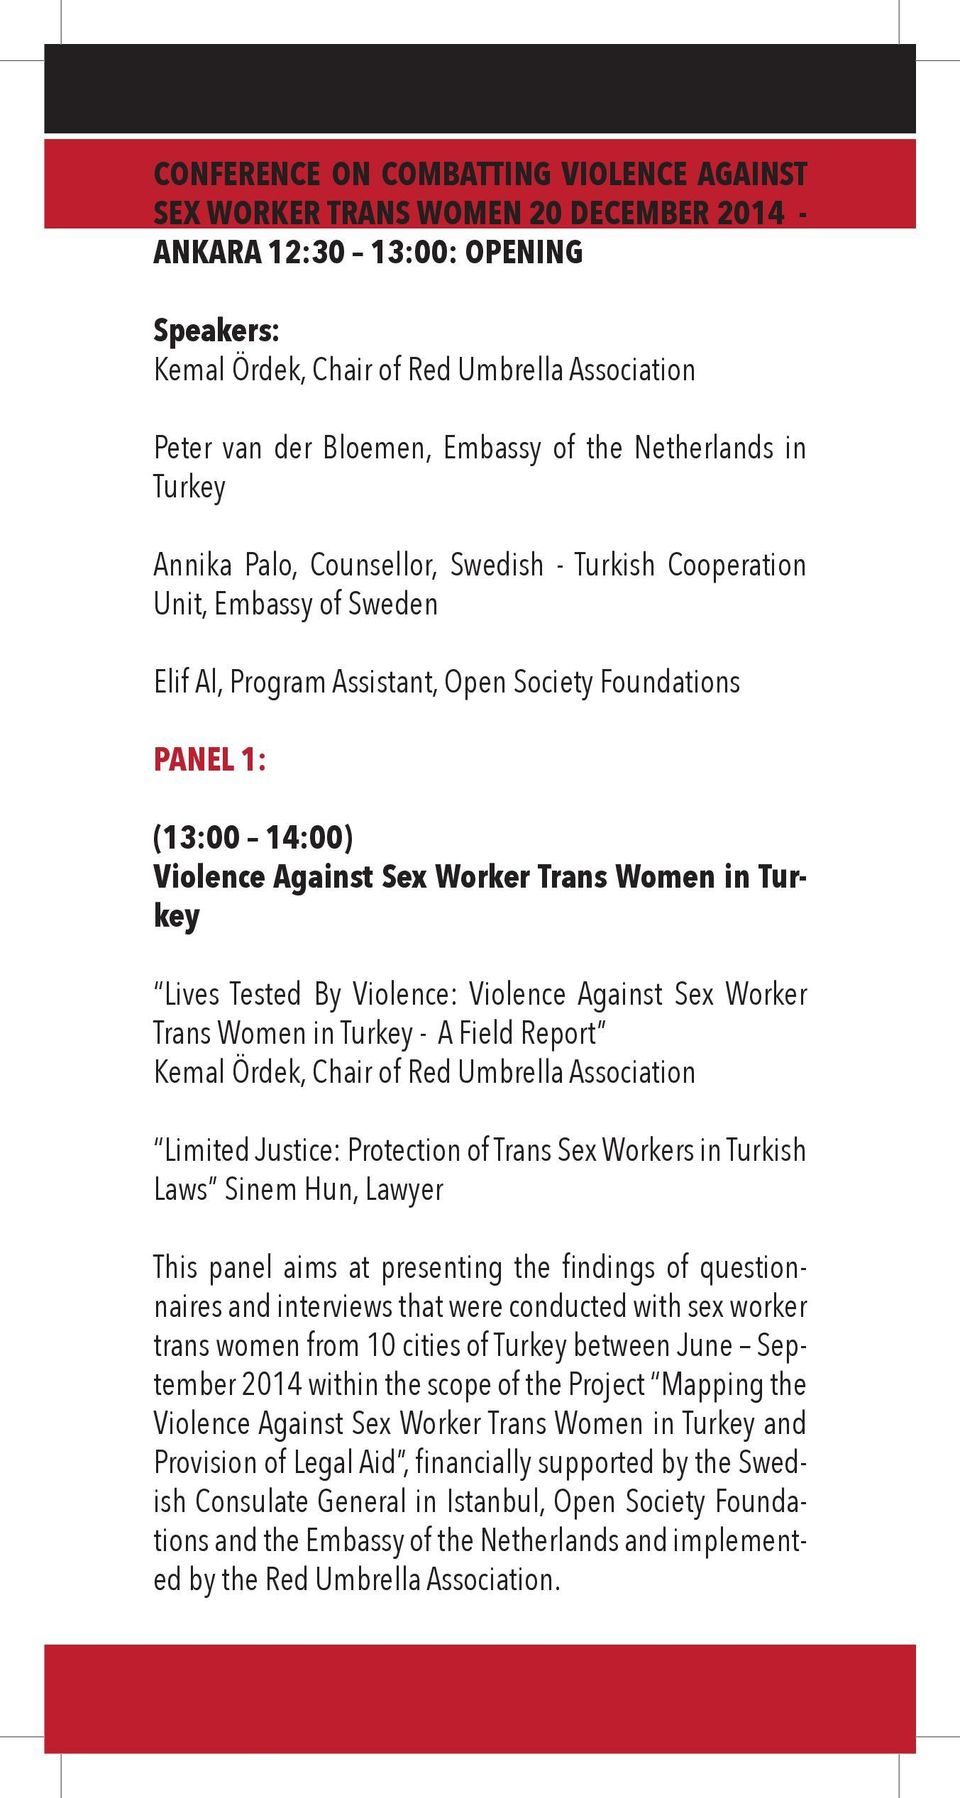 Against Sex Worker Trans Women in Turkey Lives Tested By Violence: Violence Against Sex Worker Trans Women in Turkey - A Field Report Kemal Ördek, Chair of Red Umbrella Association Limited Justice: